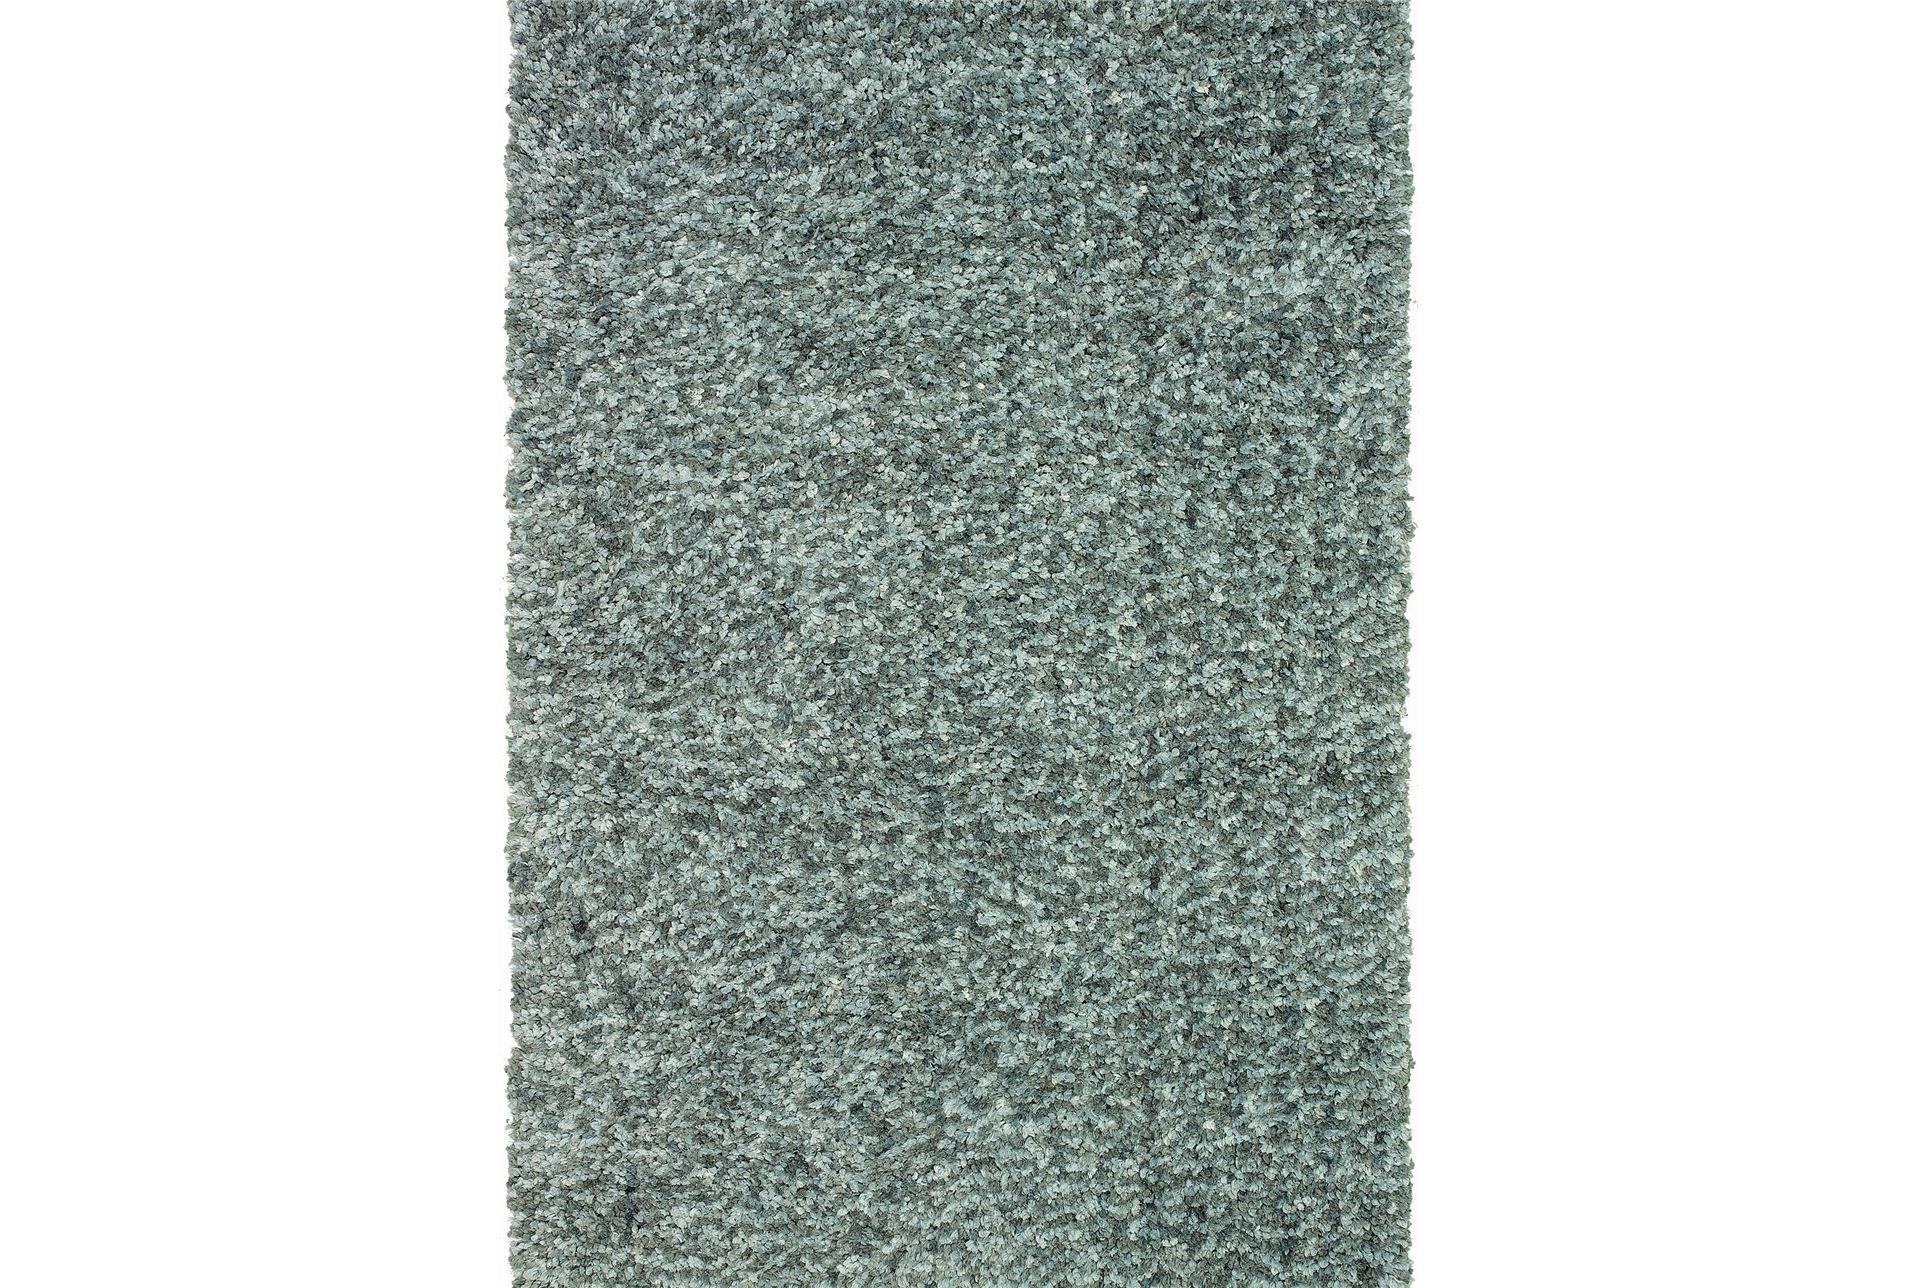 96x120 rug dolce sky living spaces for Living spaces rugs